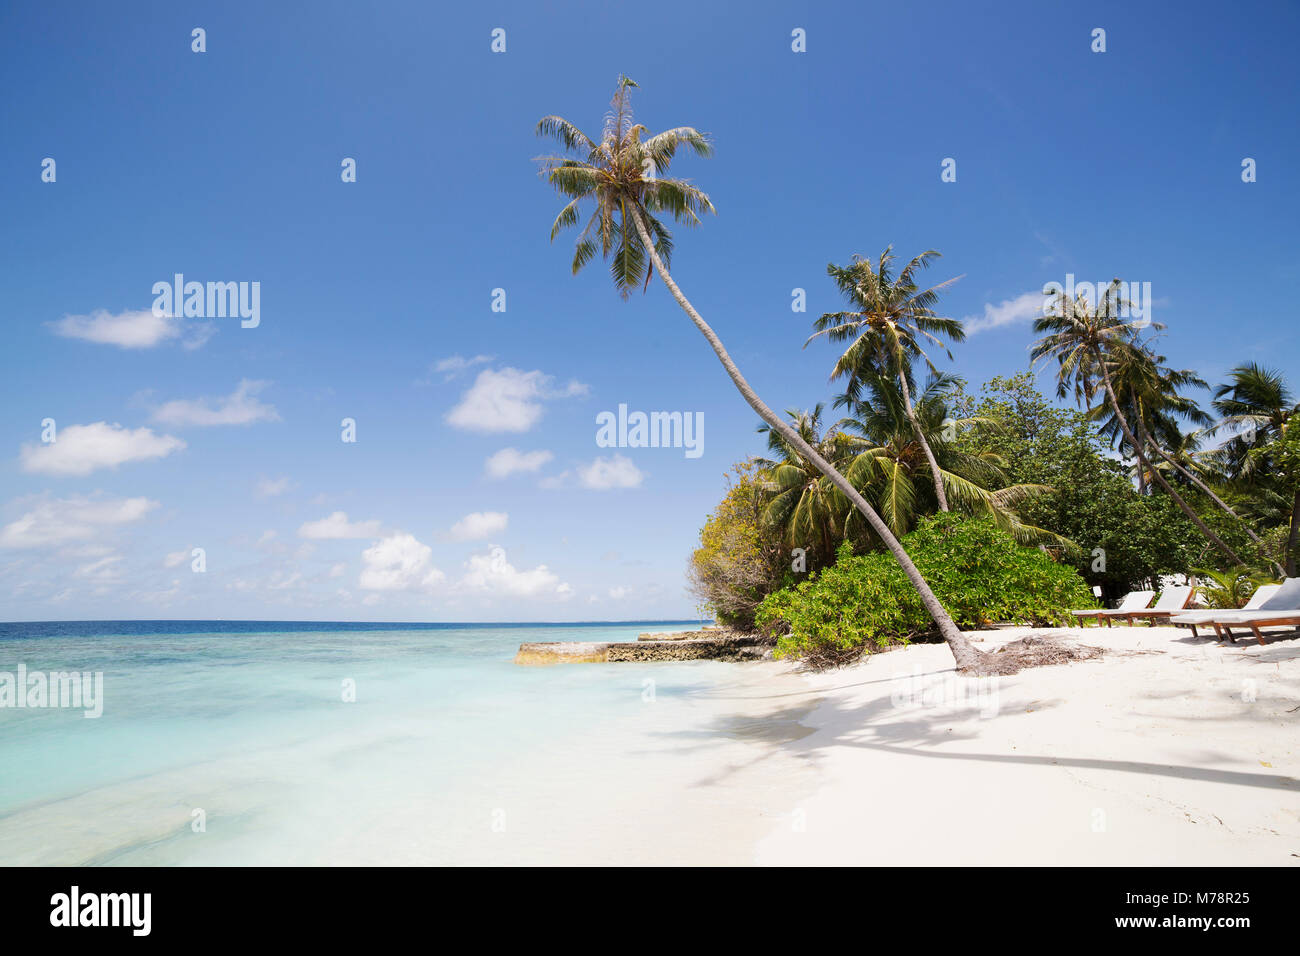 Palm trees lean over white sand, under a blue sky, on Bandos Island in The Maldives, Indian Ocean, Asia - Stock Image